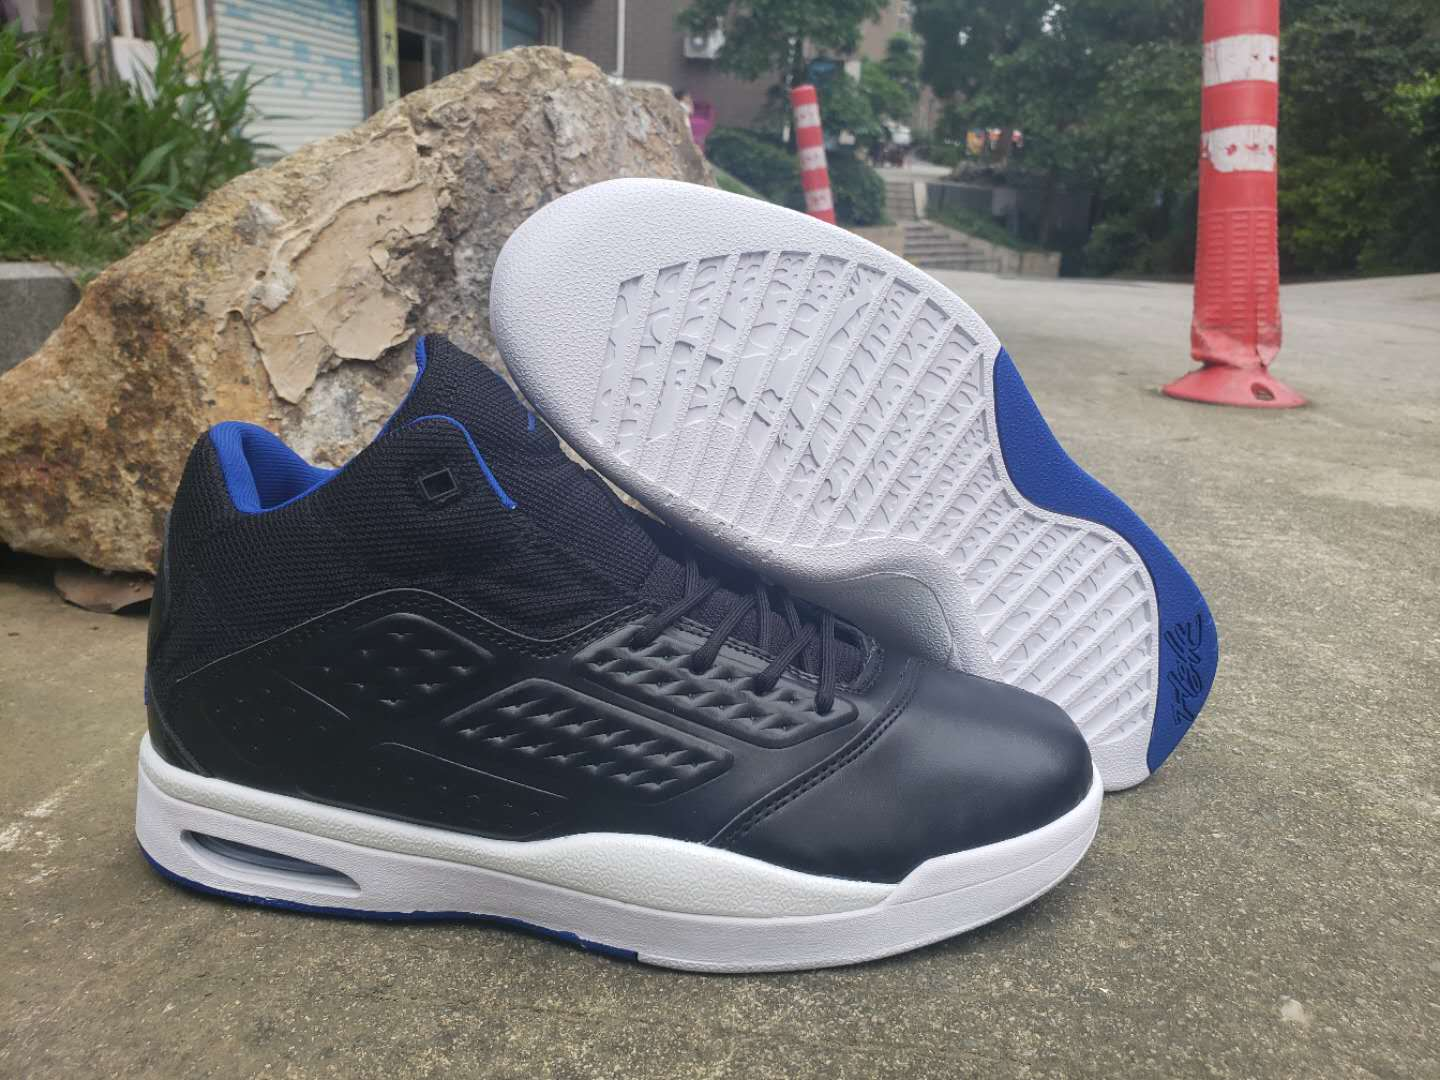 2019 Air Jordan New School Black Blue White Shoes